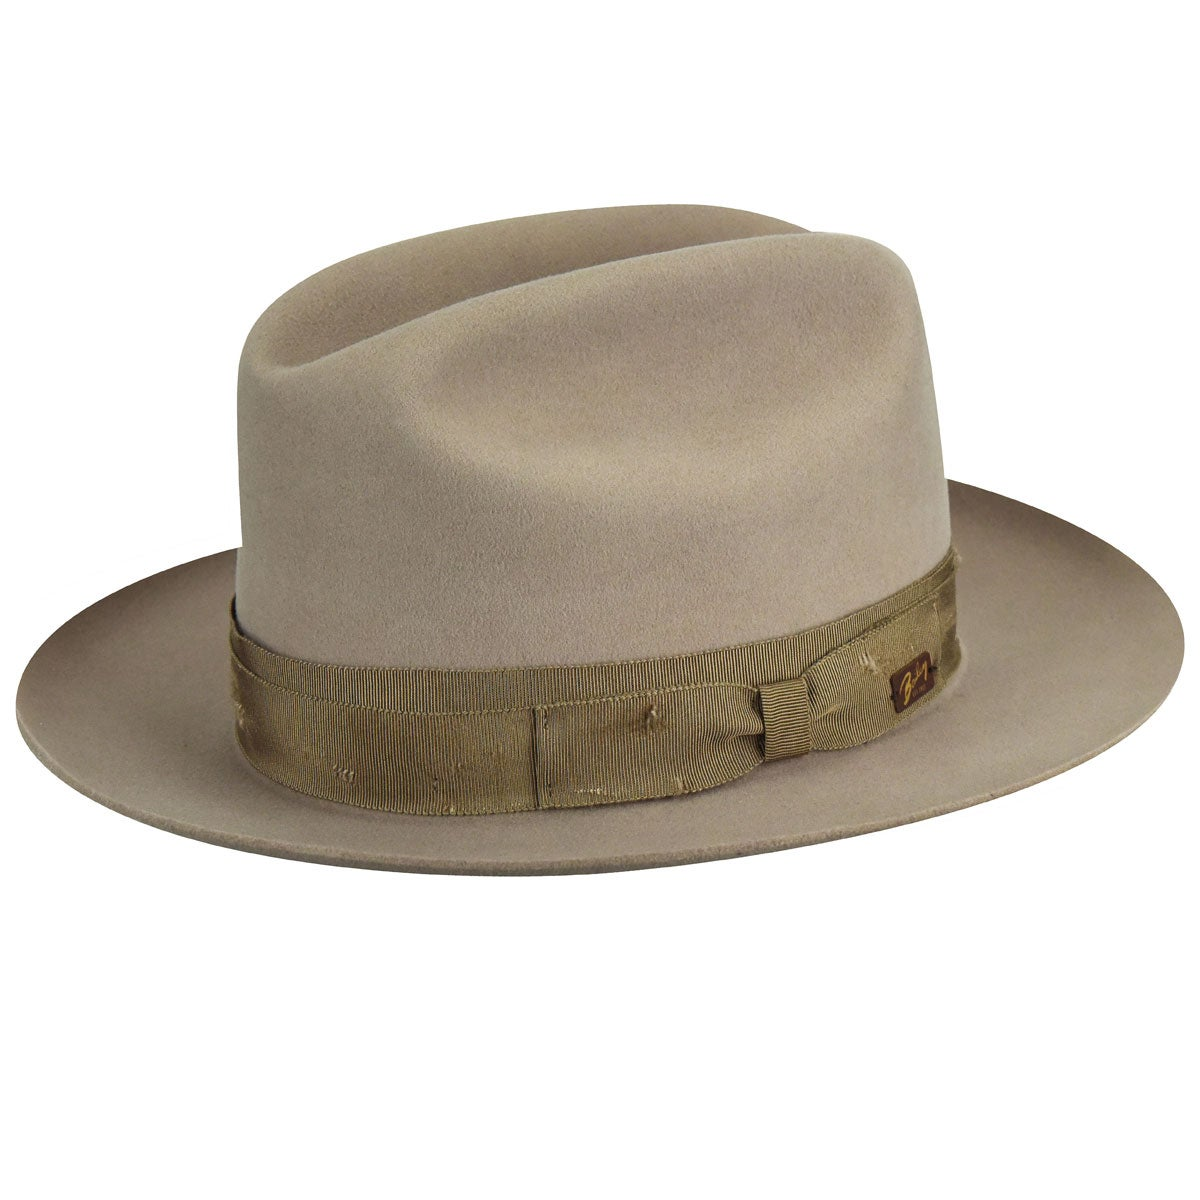 1930s Mens Hat Fashion Collister Distressed Band Fedora $135.00 AT vintagedancer.com